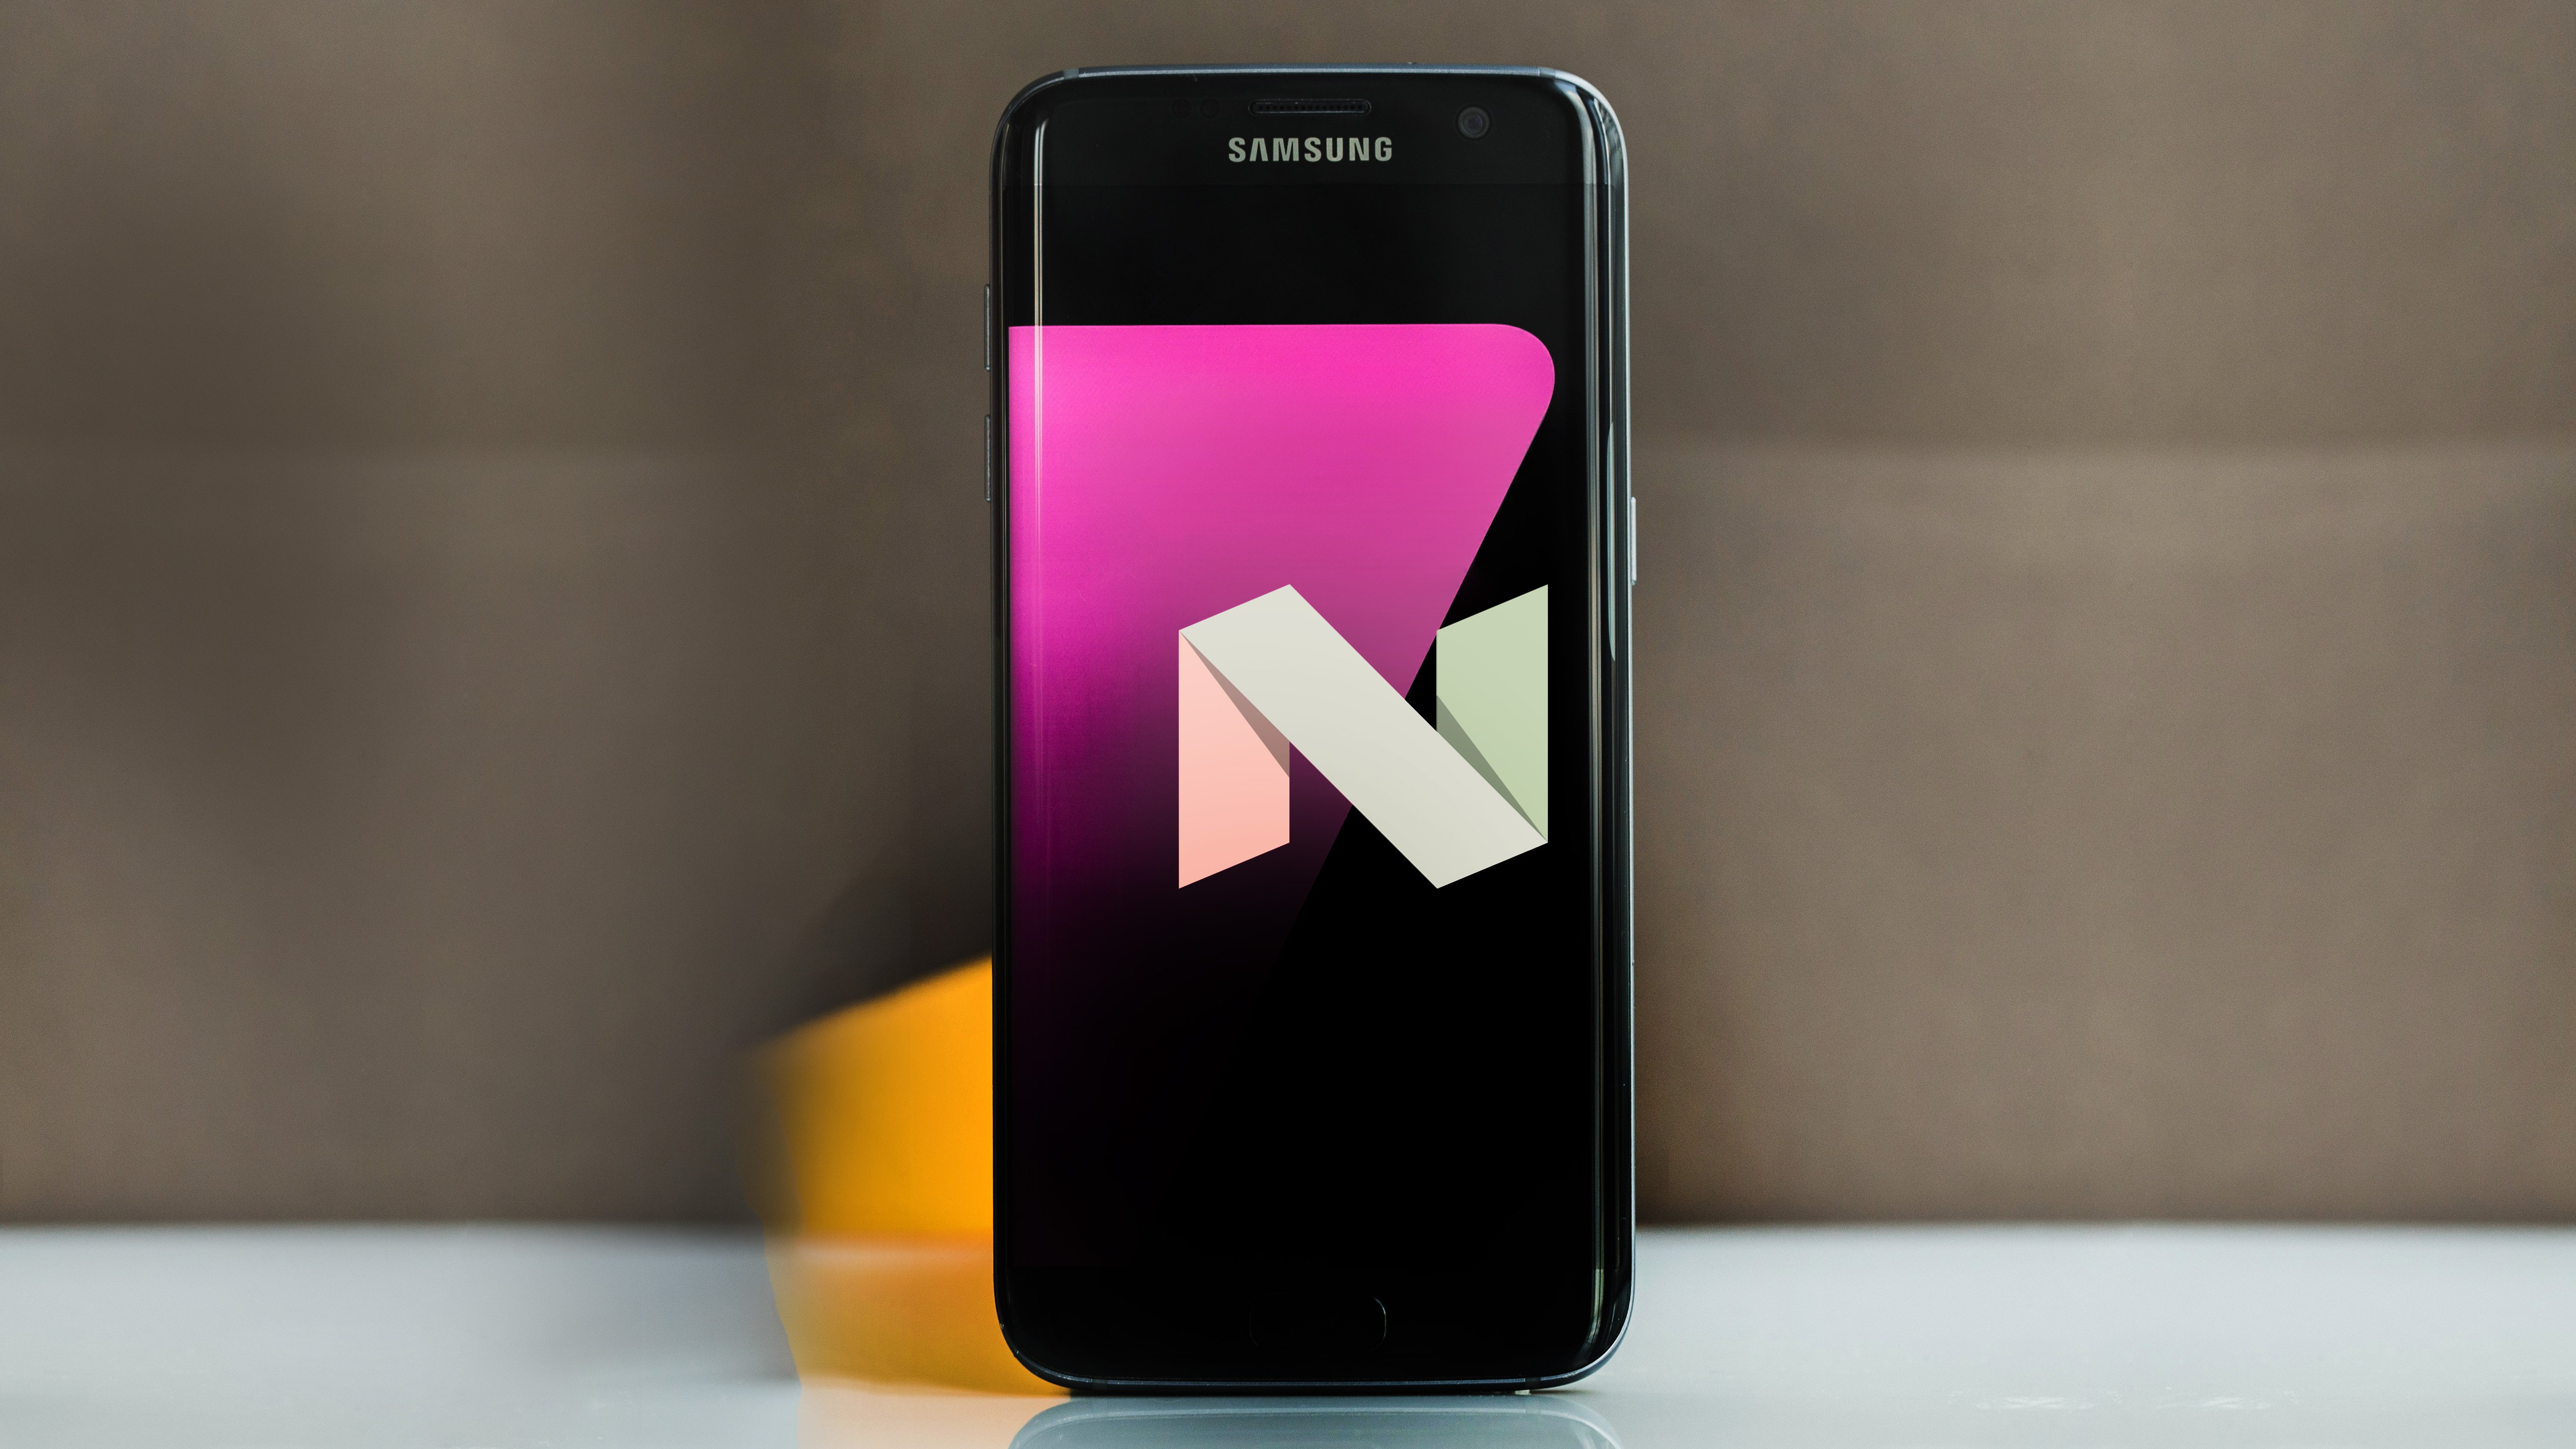 Second Impression Galaxy S7 Edge Running Android Nougat Androidpit Samsung G935